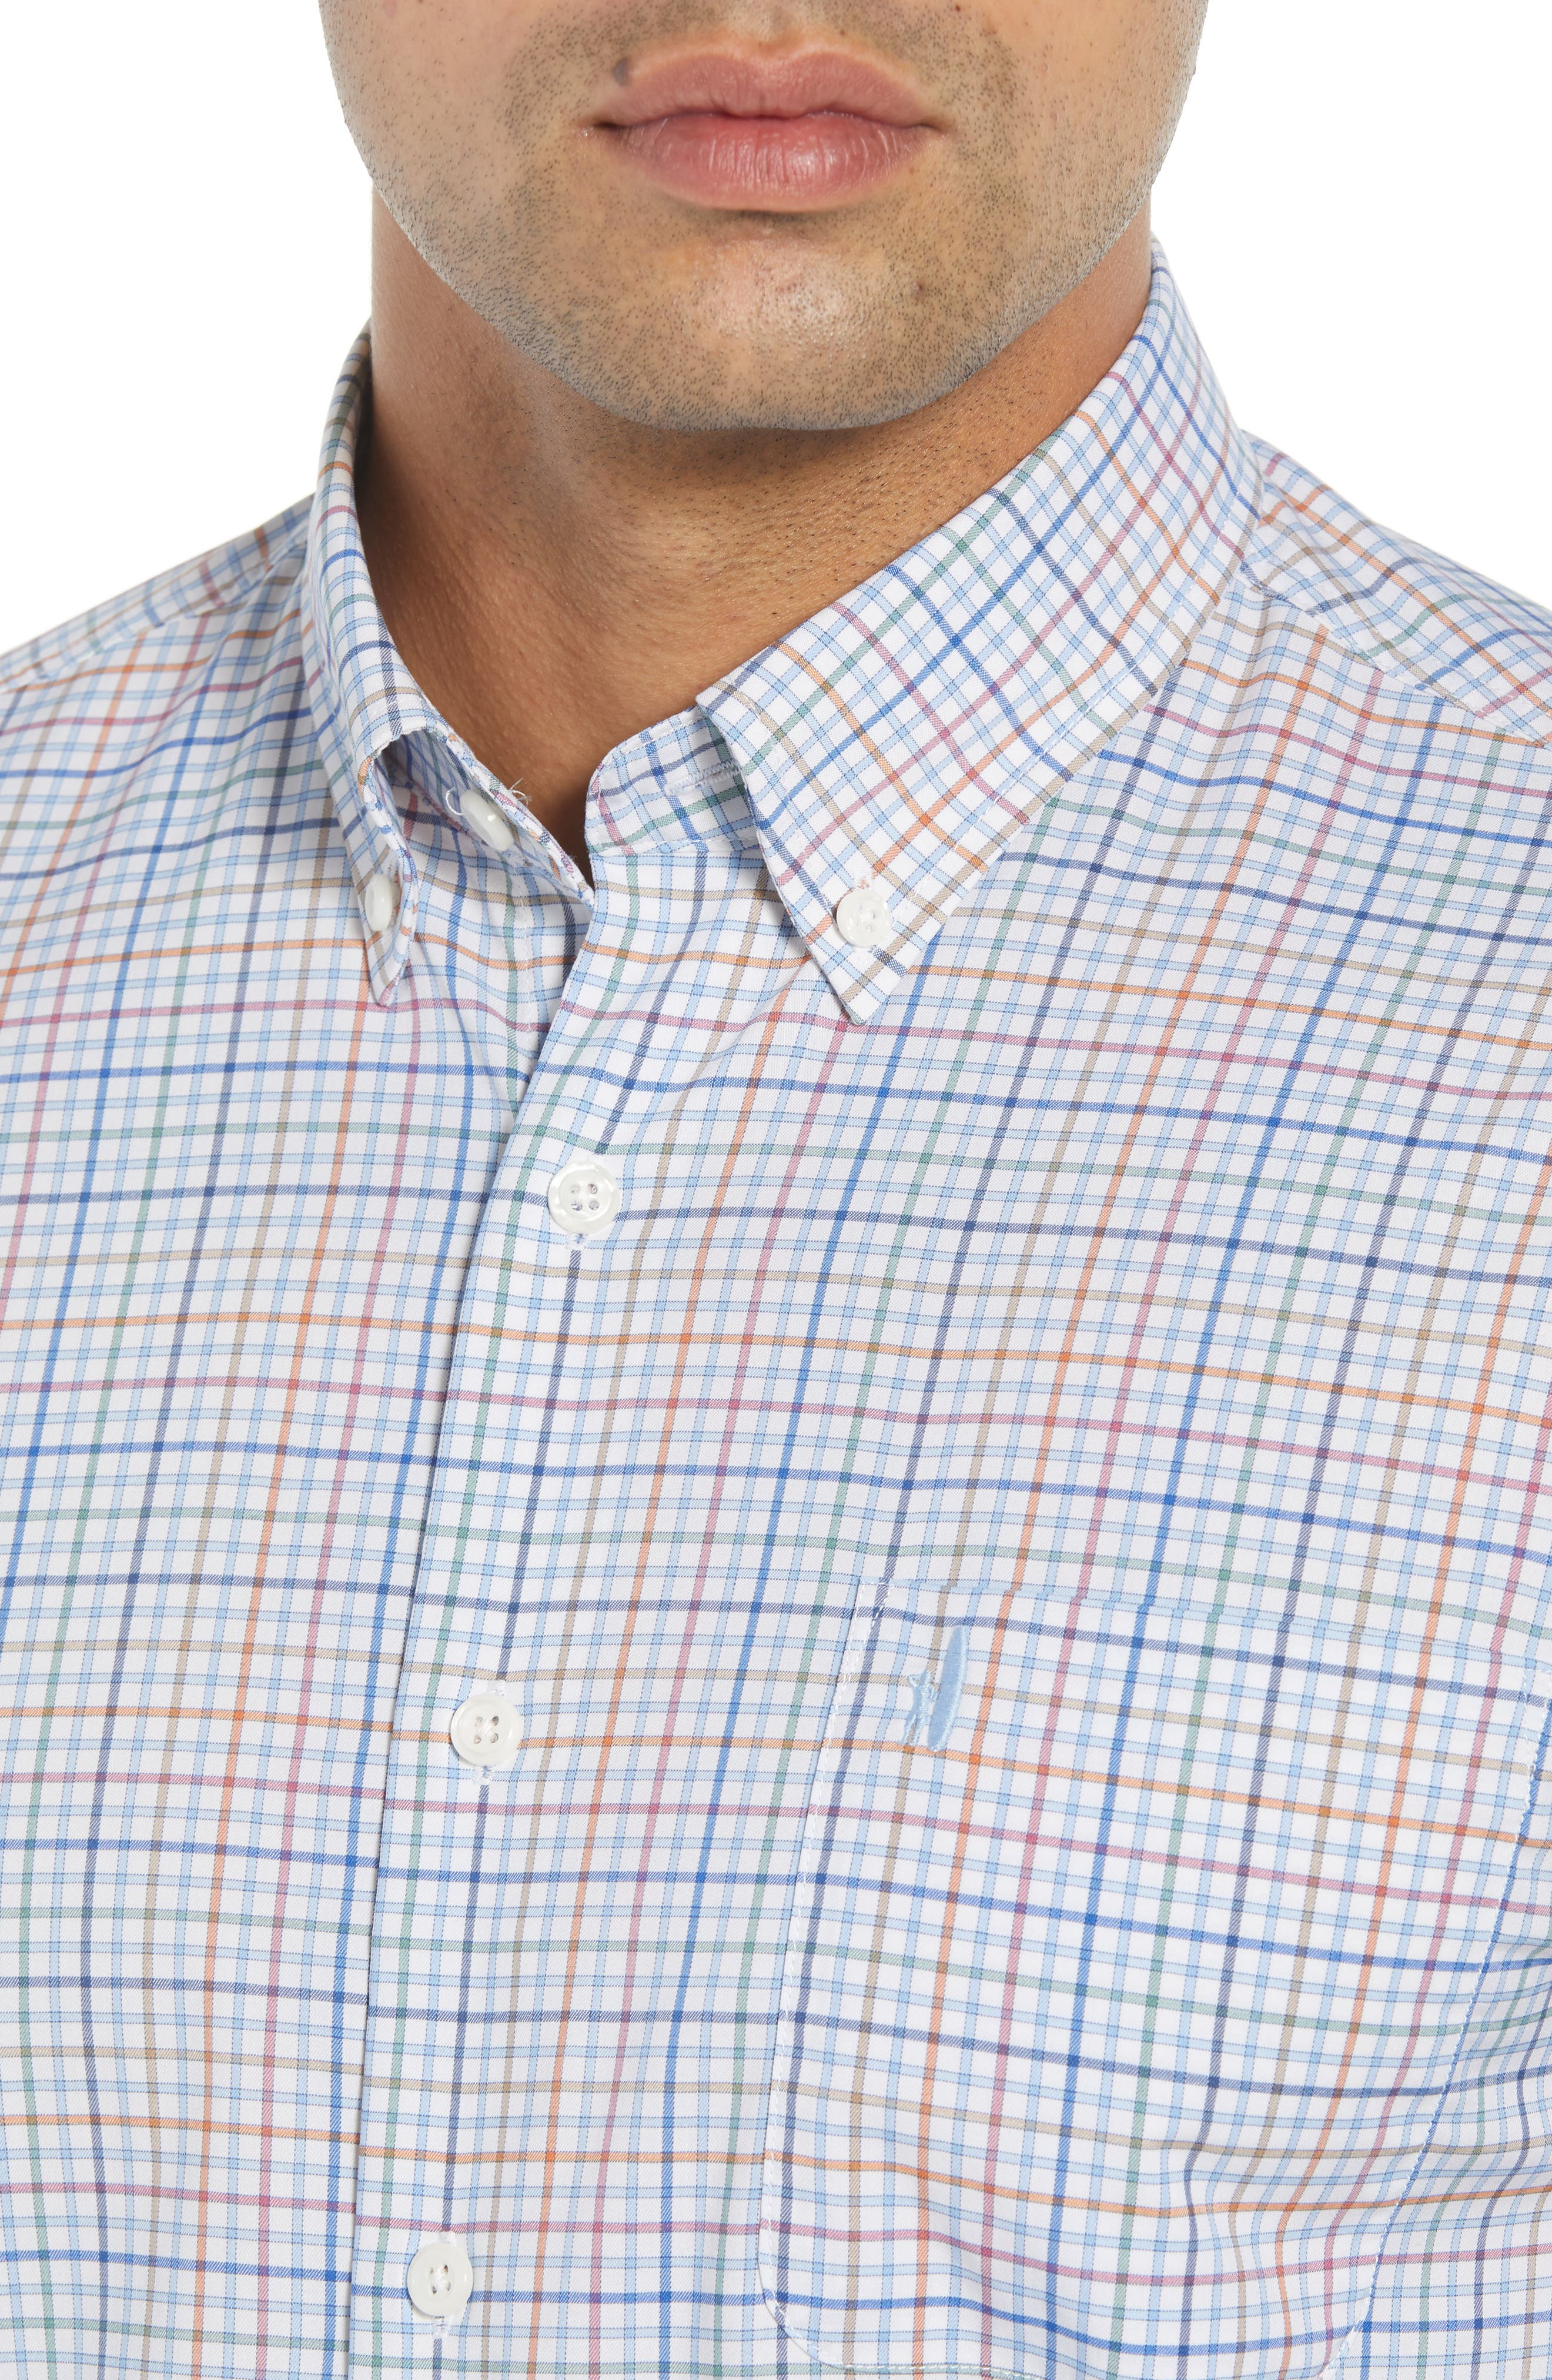 Chester Classic Fit Sport Shirt,                             Alternate thumbnail 2, color,                             GULF BLUE